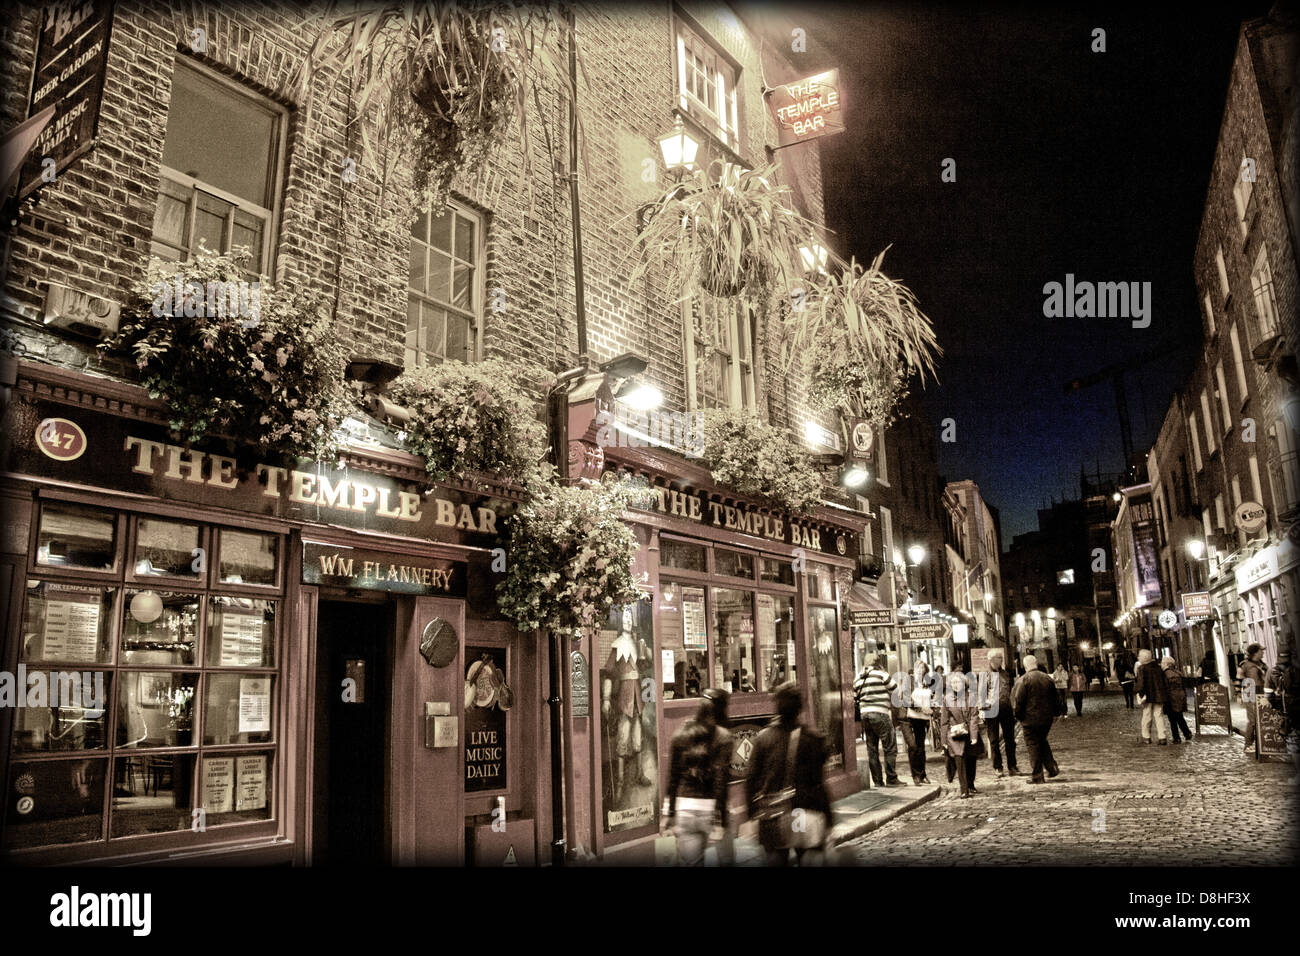 Dusk,city,drinking,tourist,tourism,shot,nightshot,sepia,selective,color,colour,heritage,history,old,classic,street,streets,south,of,the,river,medieval,street,pattern,Dame,Street,Westmoreland,St,Fishamble,urban,decay,old,fashioned,traditional,place,places,to,visit,City,pub,pubs,bar,bars,saloon,D2,gotonysmith tourist tourism travel IE Dub saloons cultural quarter Dublin2,gotonysmith,Buy Pictures of,Buy Images Of